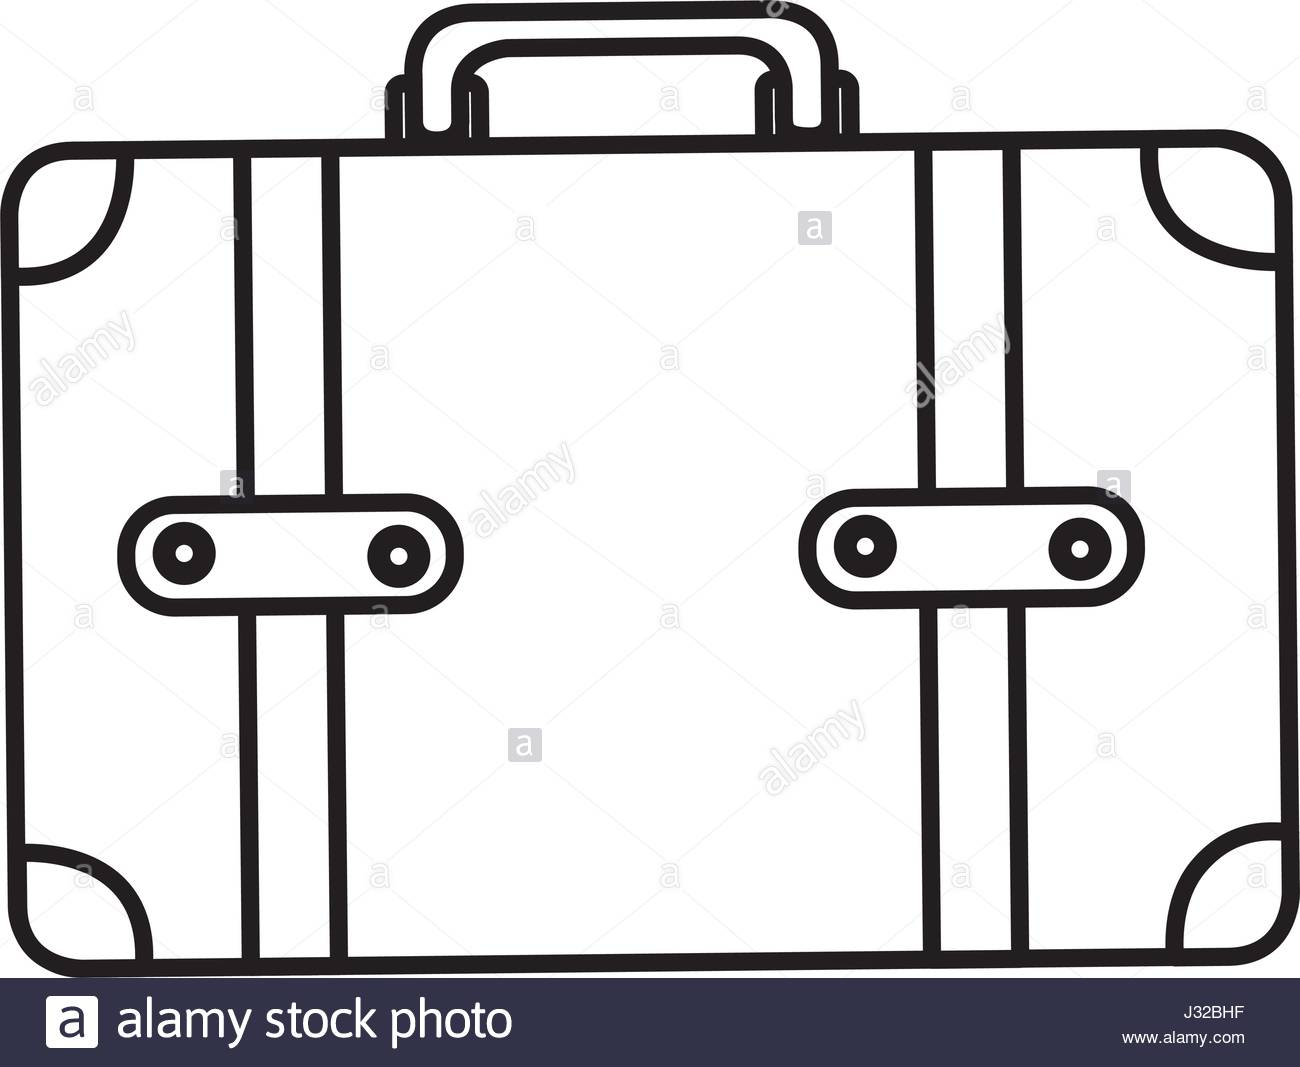 1300x1067 Monochrome Silhouette Of Leather Suitcase Stock Vector Art